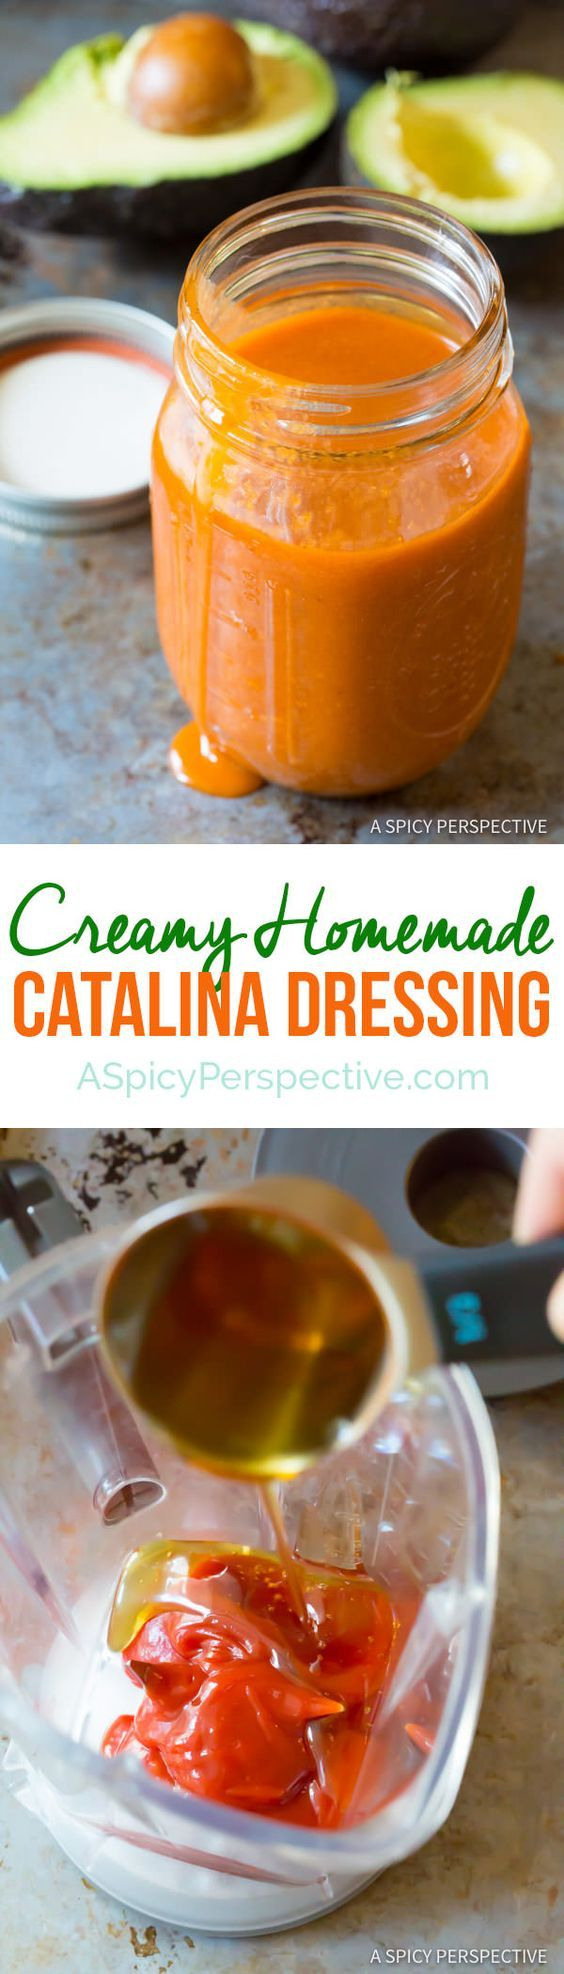 3* Homemade Catalina Dressing | ASpicyPerspective.com. Good if you like Catalina, had almost too much tang for me. Did like the flavor with the Dorito taco salad though